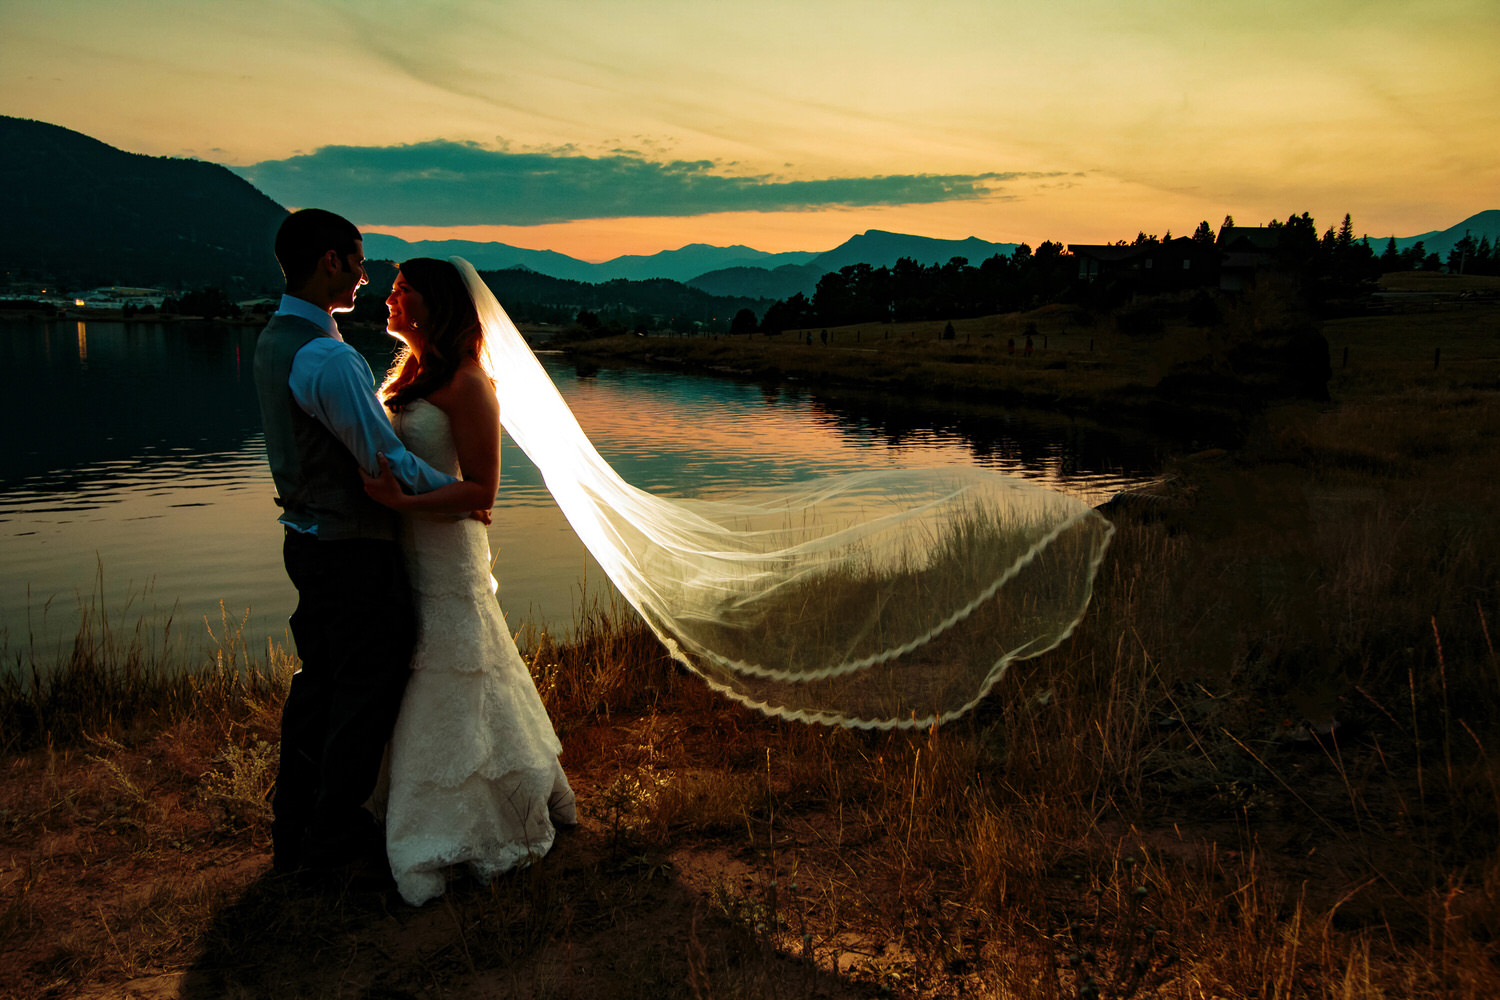 estes-park-wedding-photographer-tomKphoto-085.jpg